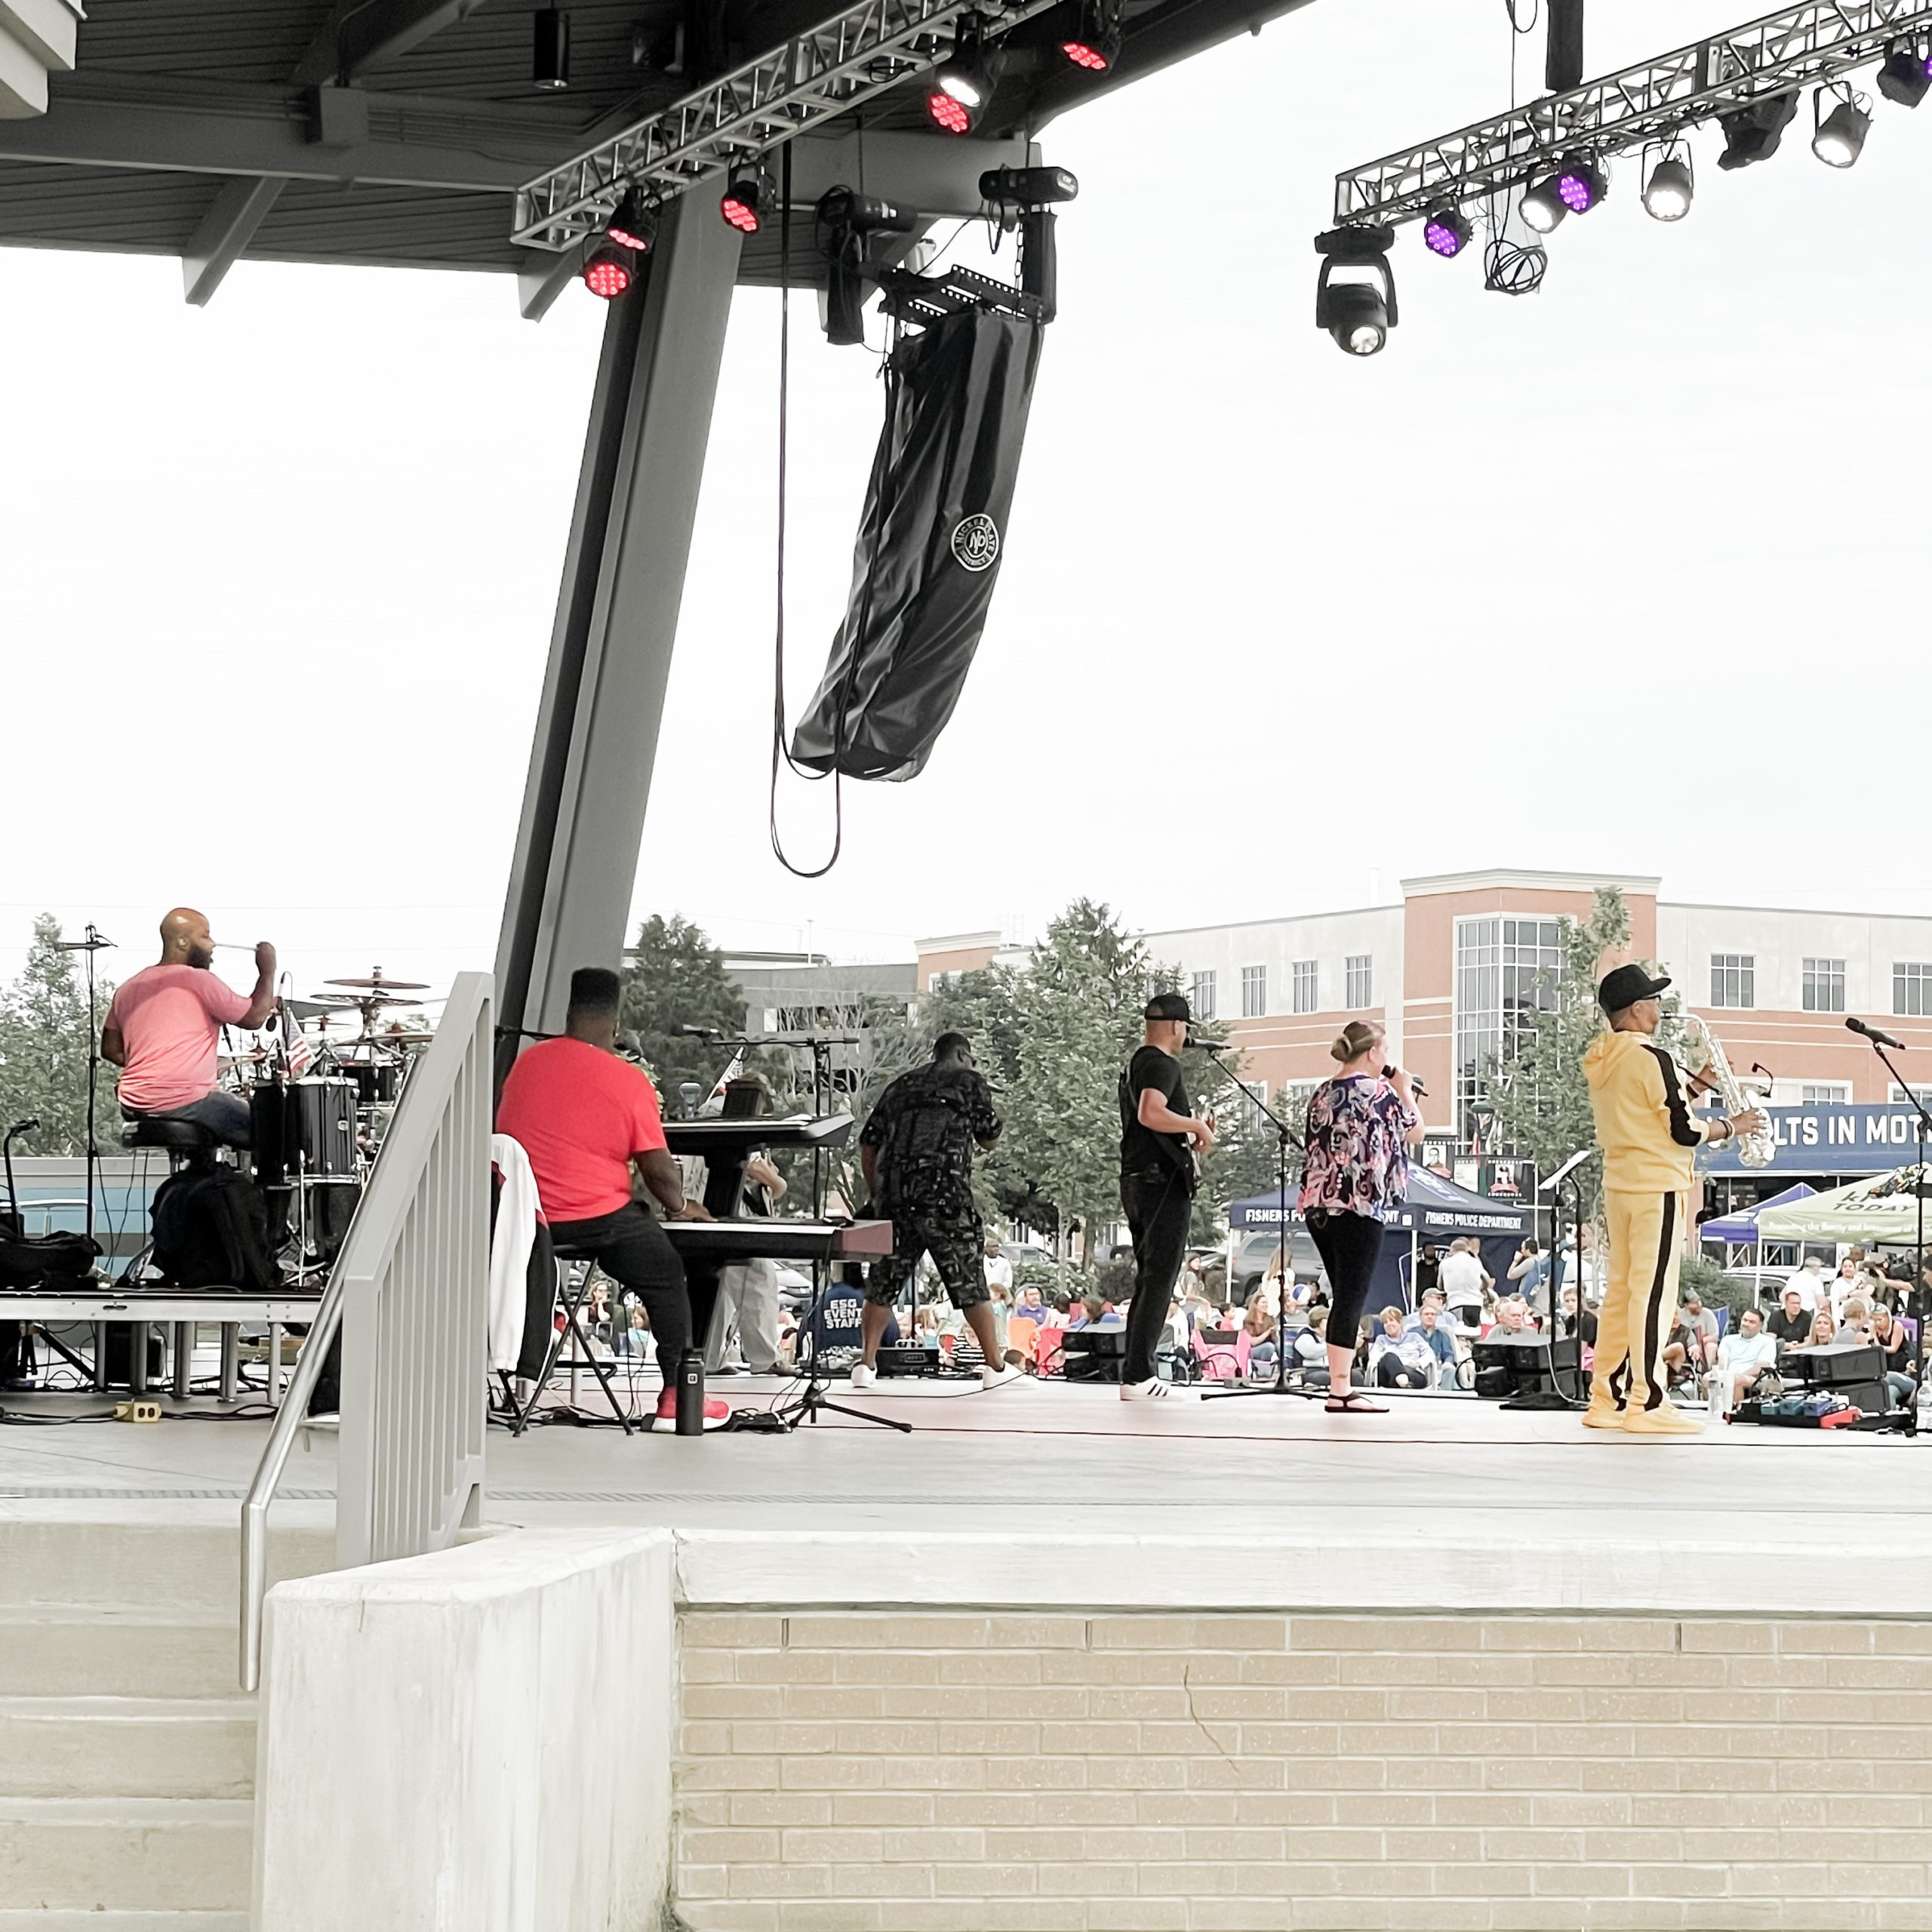 a stage with people performing